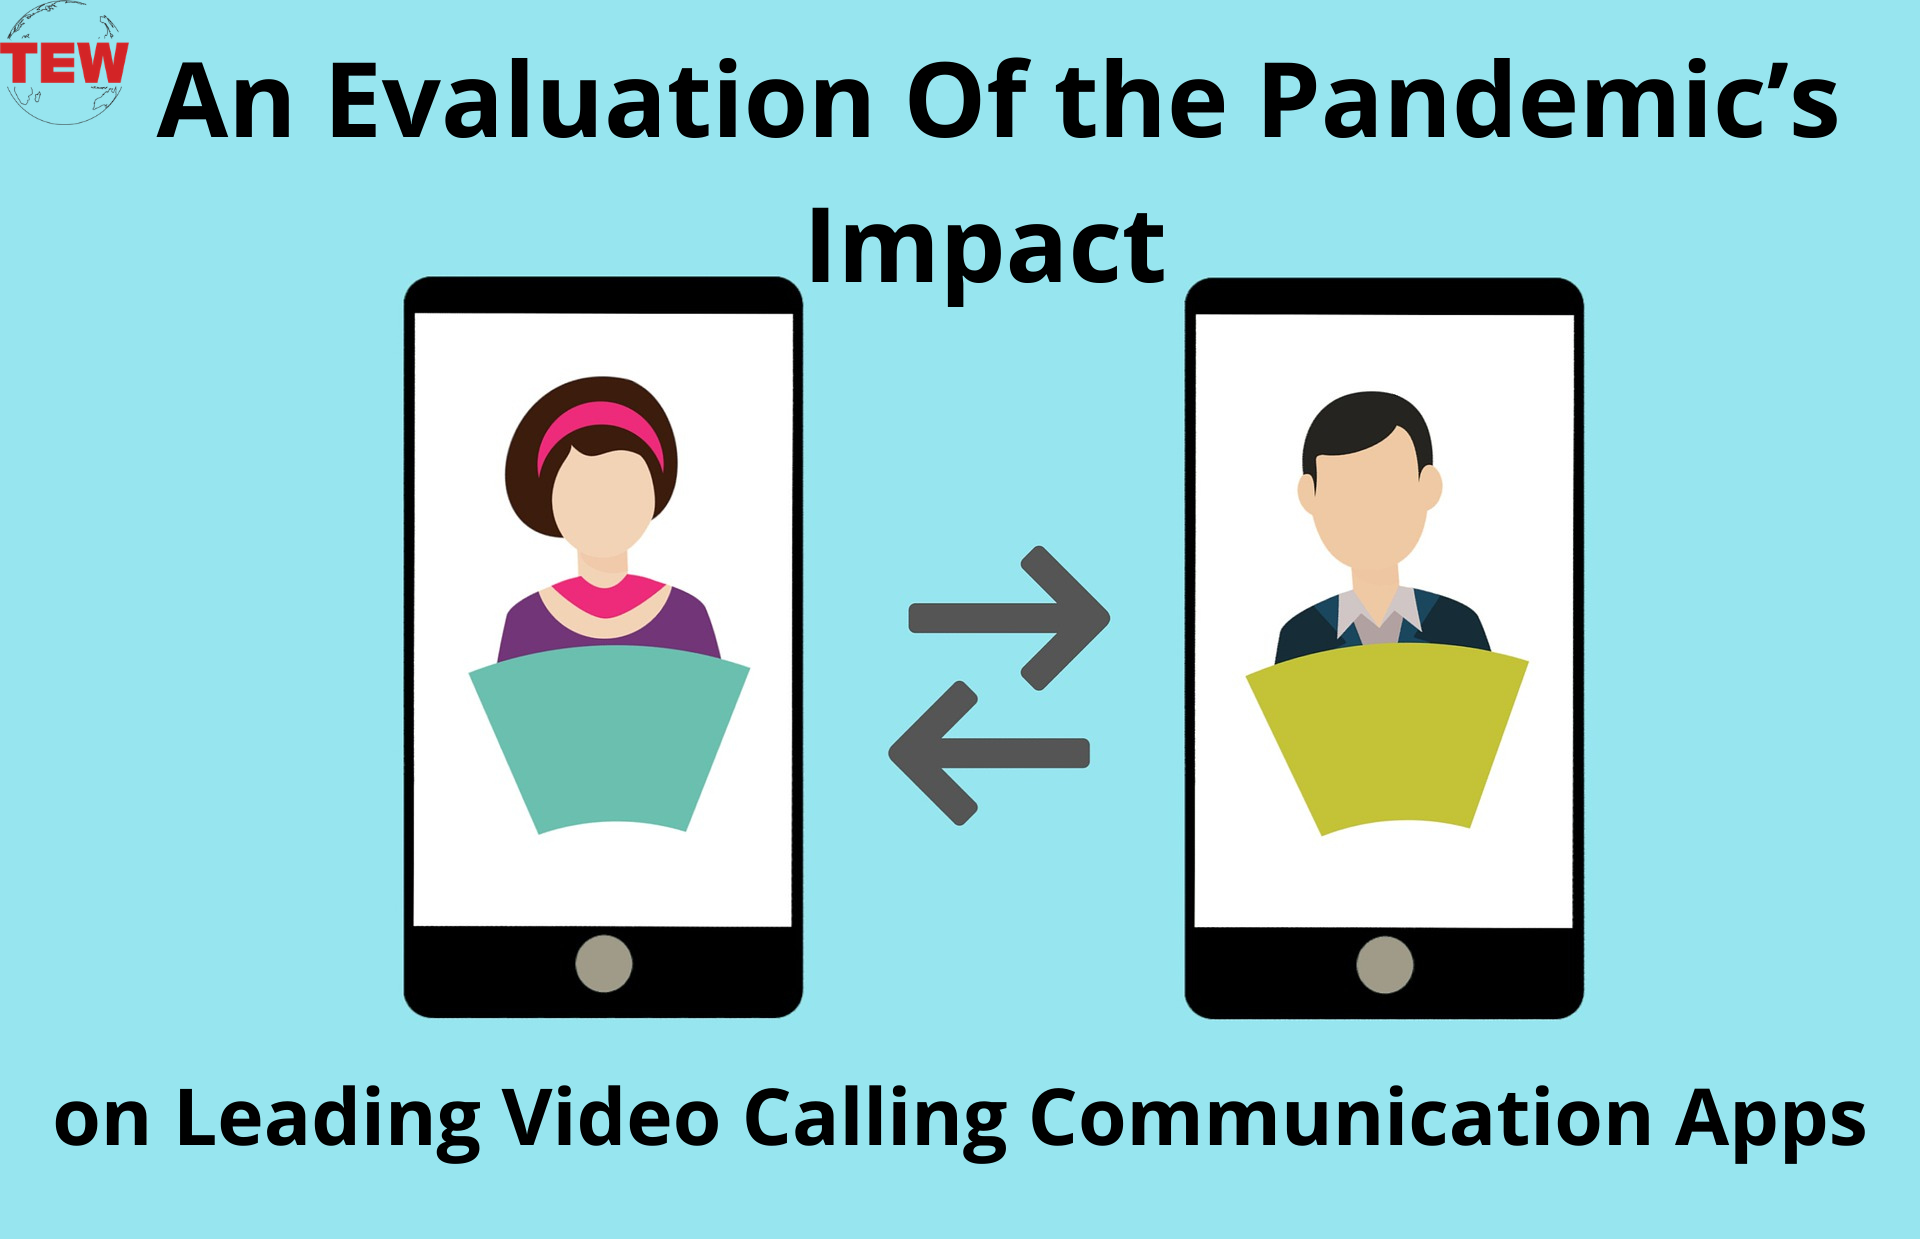 An Evaluation Of the Pandemic's Impact on Leading Video Calling Apps